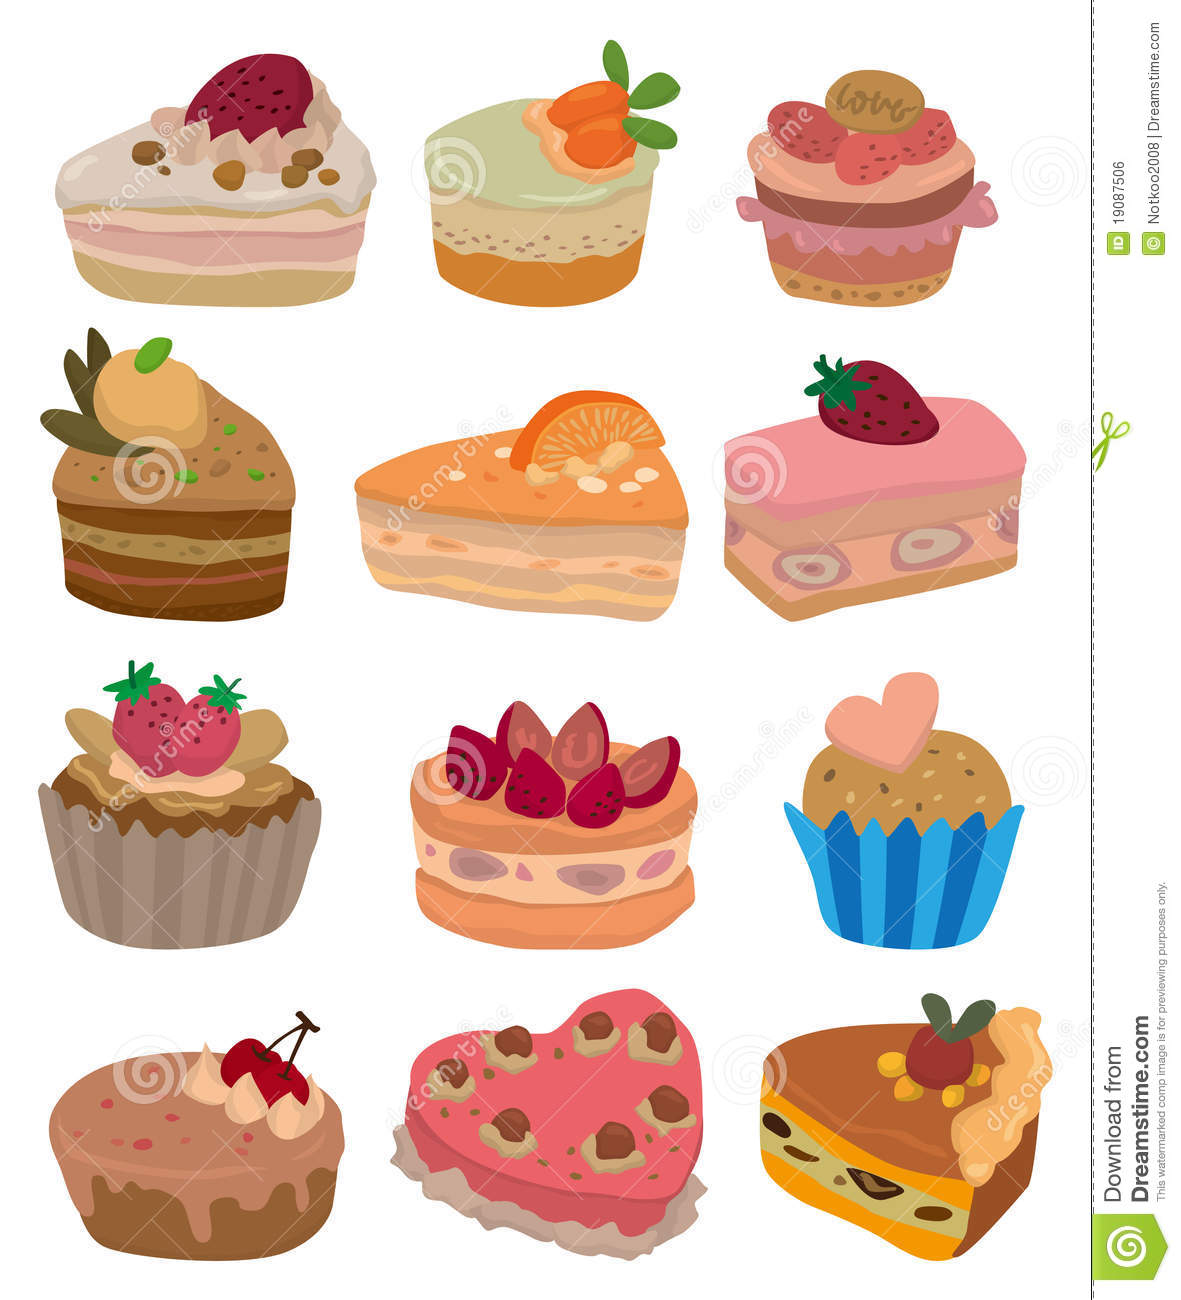 Larva Cartoon Cake Design : Cartoon Cake Icon Royalty Free Stock Image - Image: 19087506